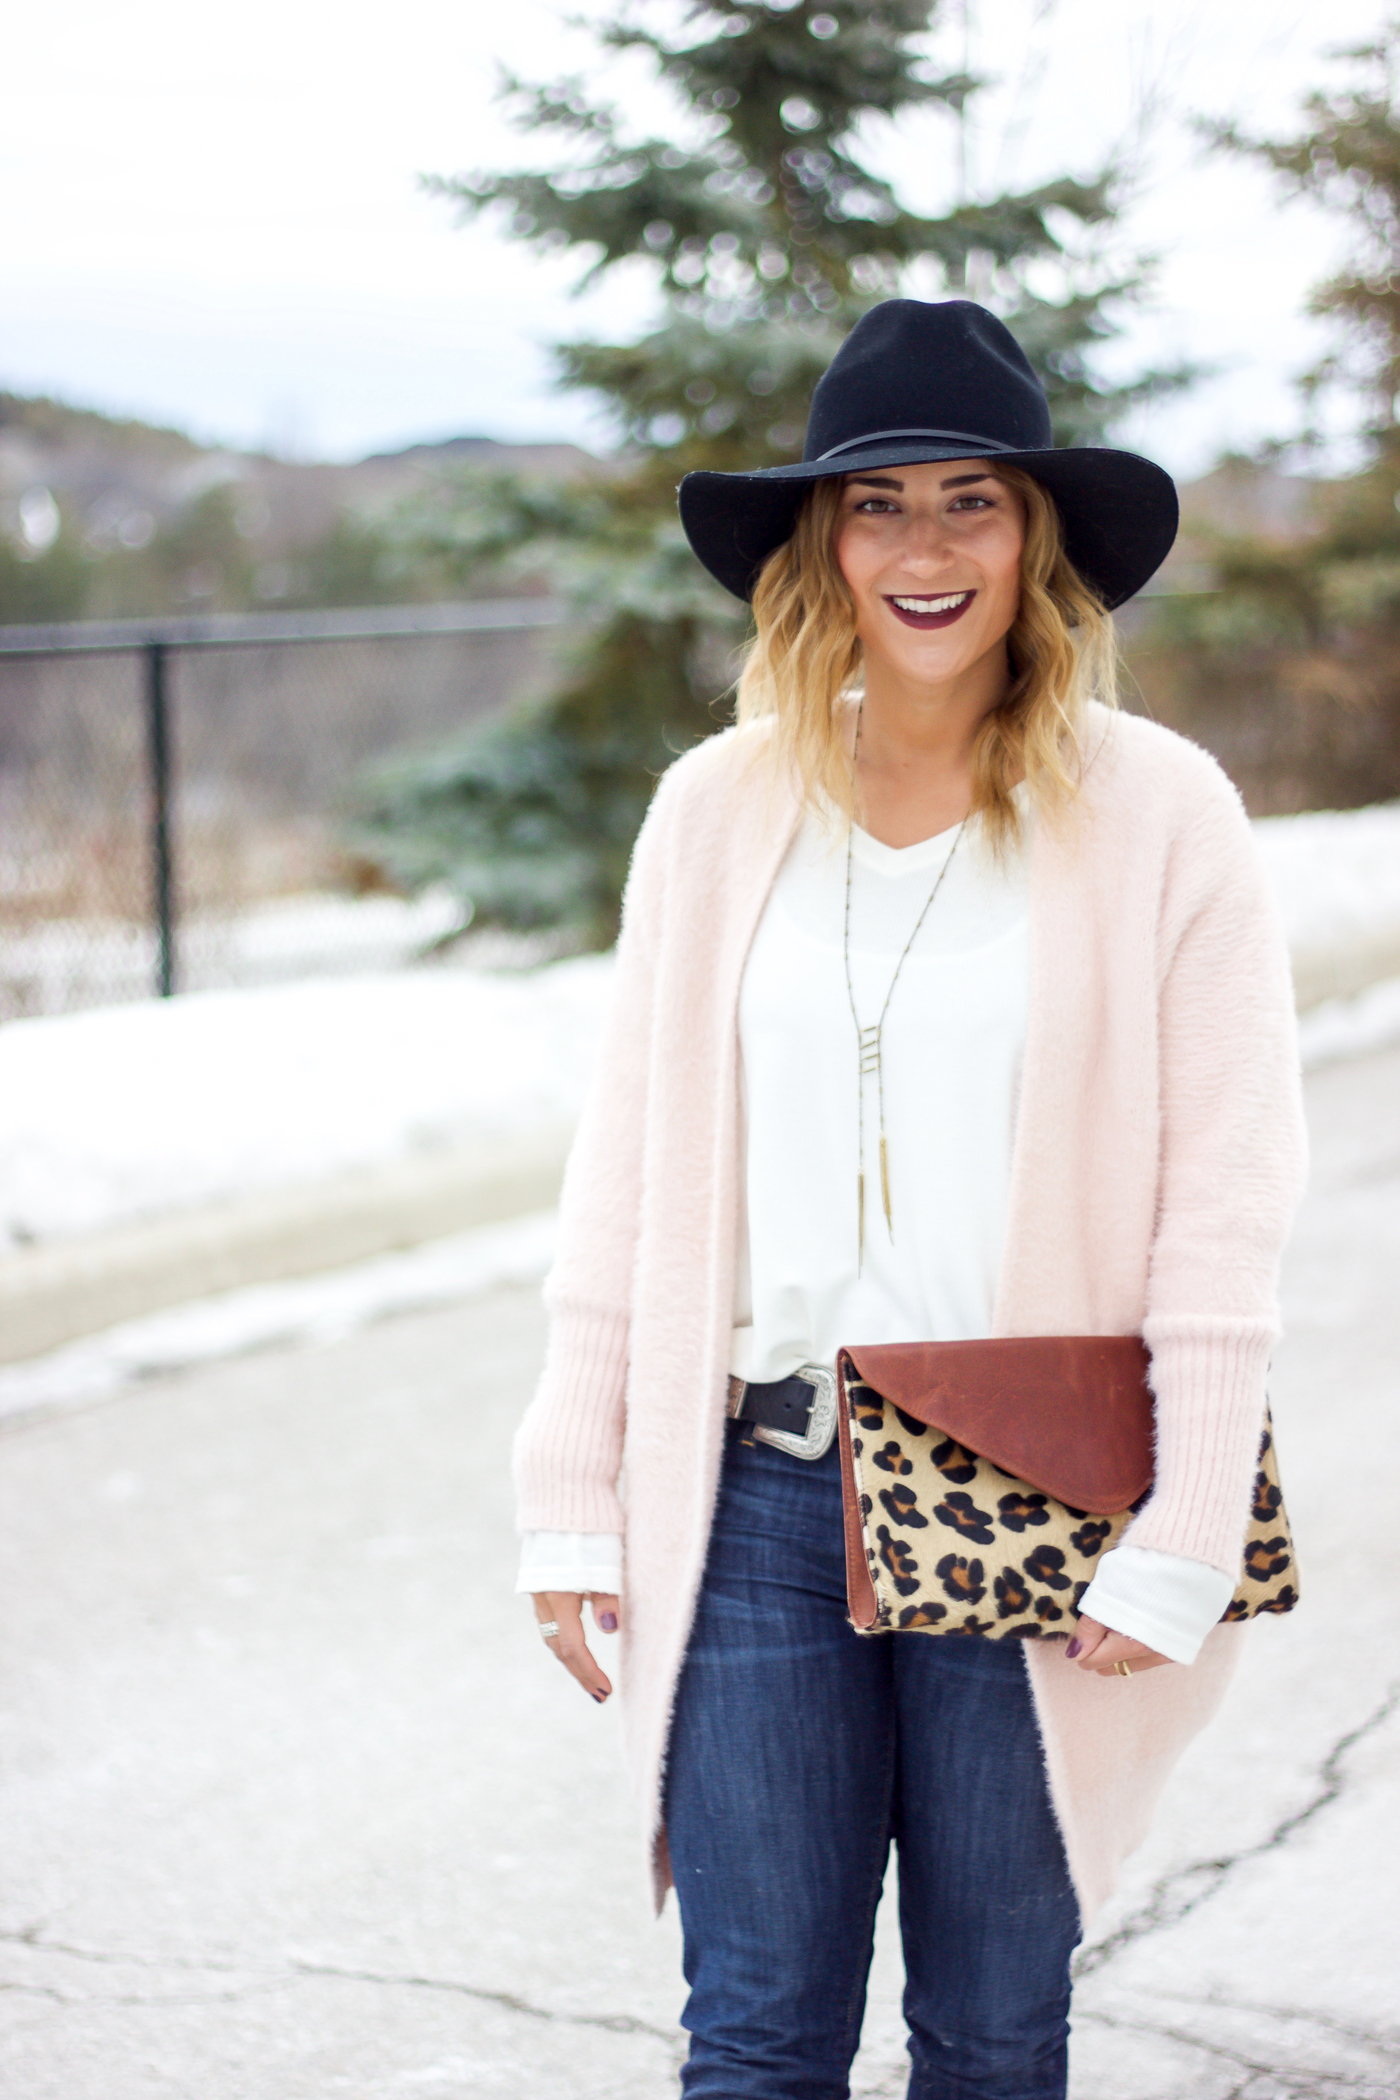 Jackie Goldhar is a top Canadian fashion and lifestyle blogger. She's wearing a chicwish cardigan, hat from Aritzia and leopard clutch from BRAVE Leather